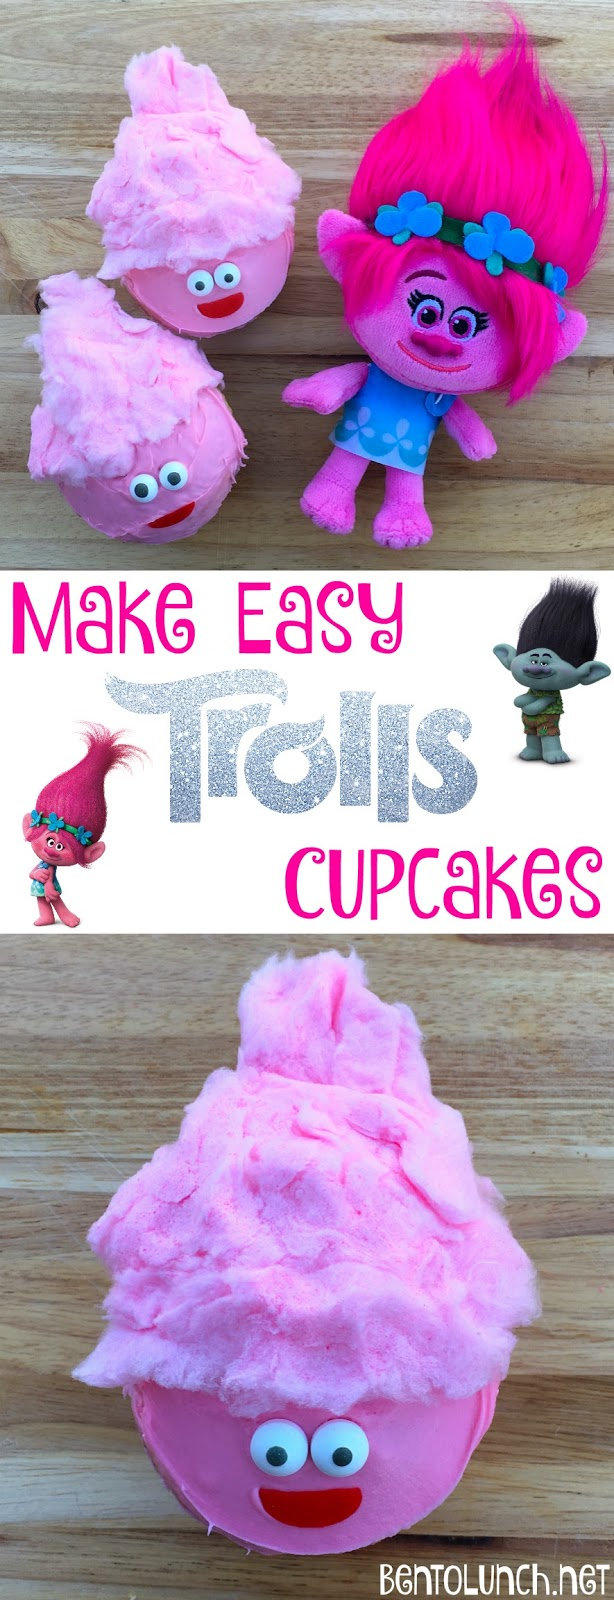 DreamWorks TROLLS: Make Easy Troll Cupcakes!